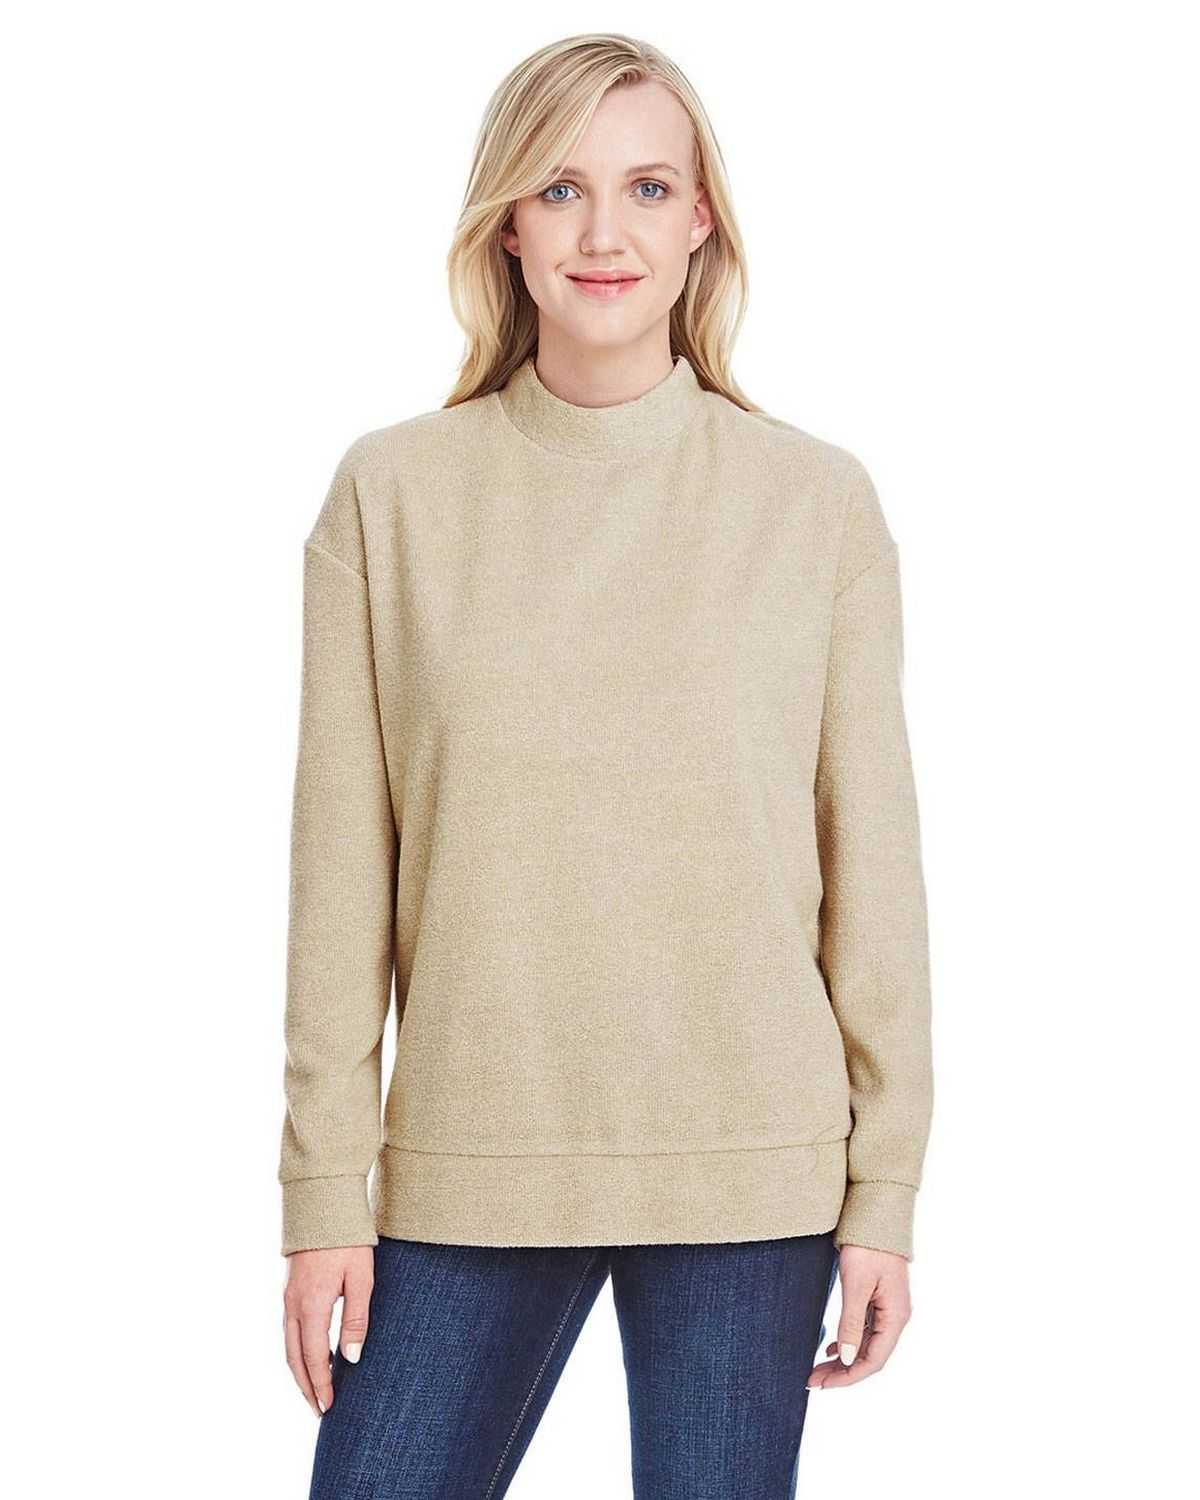 J America JA8428 Women's Weekend French Terry Mock Neck Crew T-Shirt - Natural - XS from J America